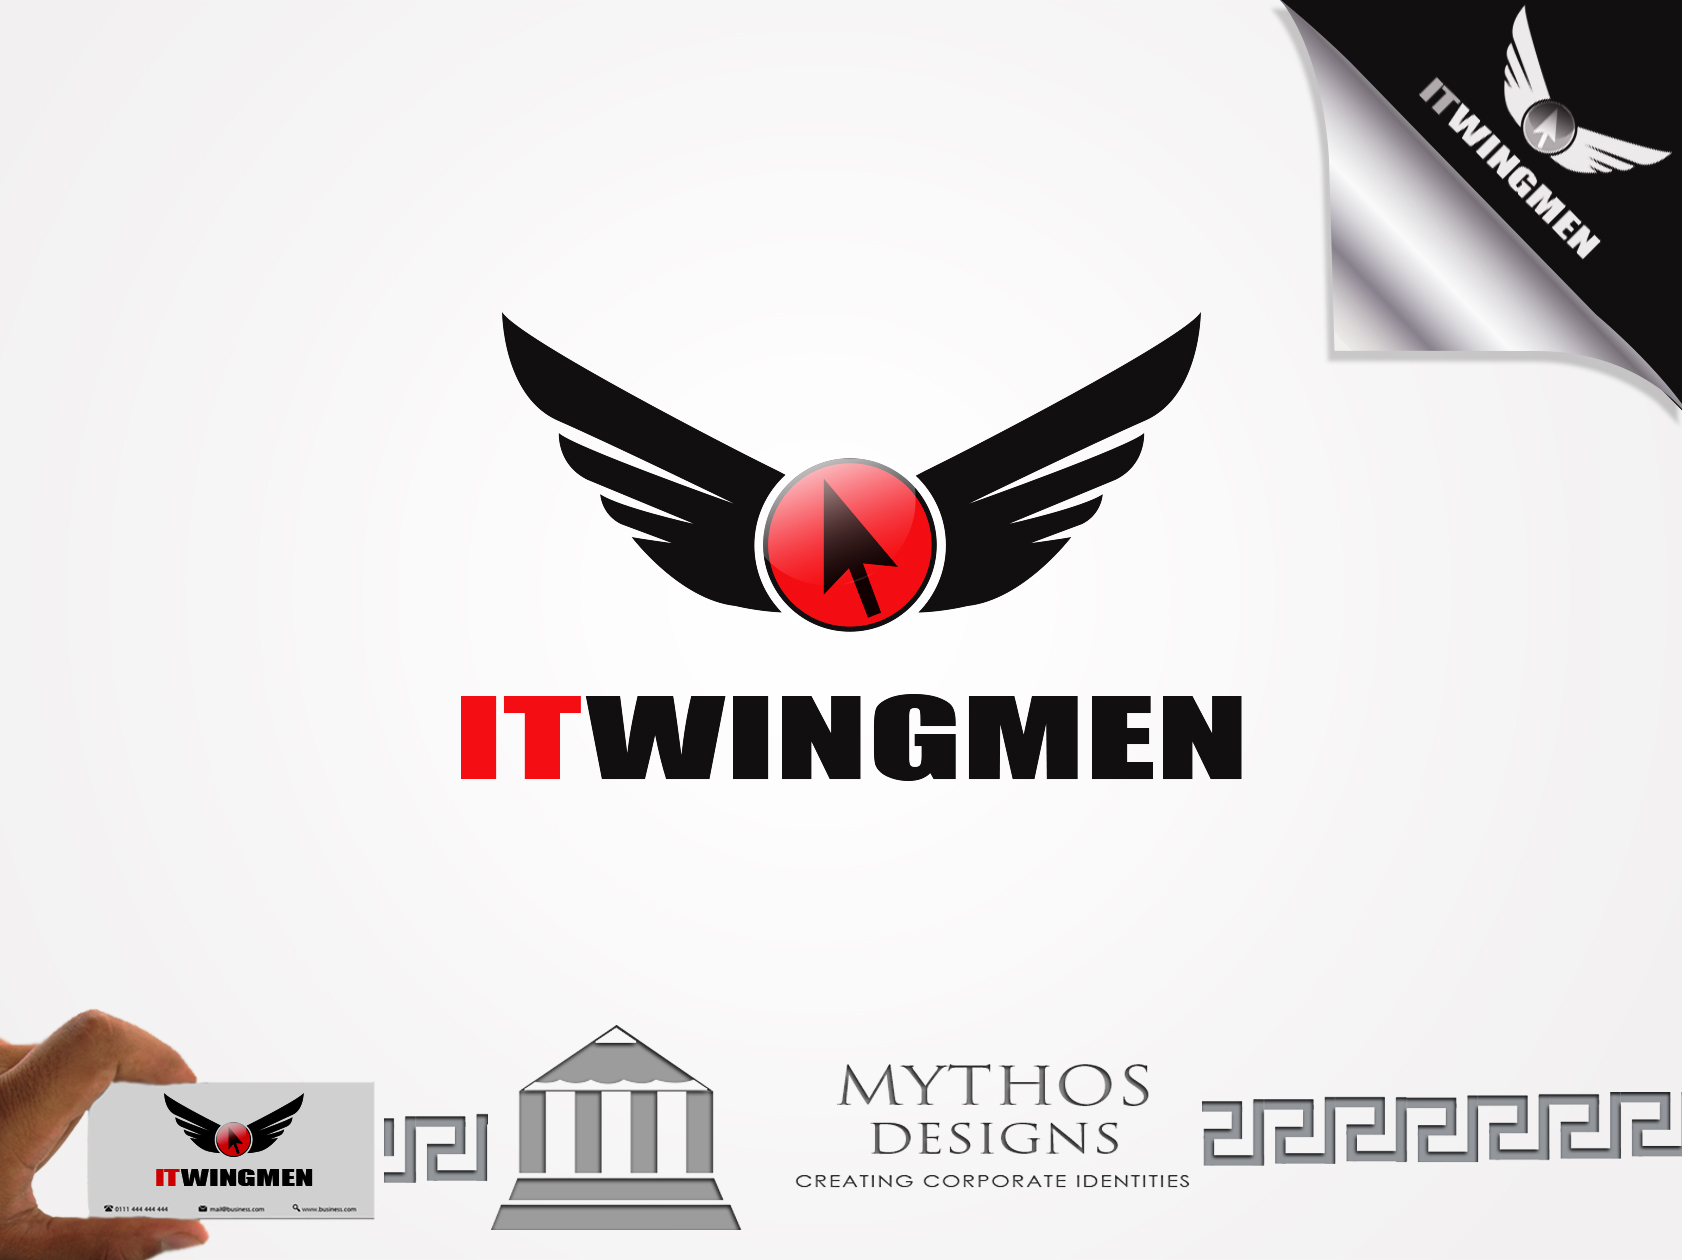 Logo Design by Mythos Designs - Entry No. 66 in the Logo Design Contest New Logo Design for IT Wingmen.